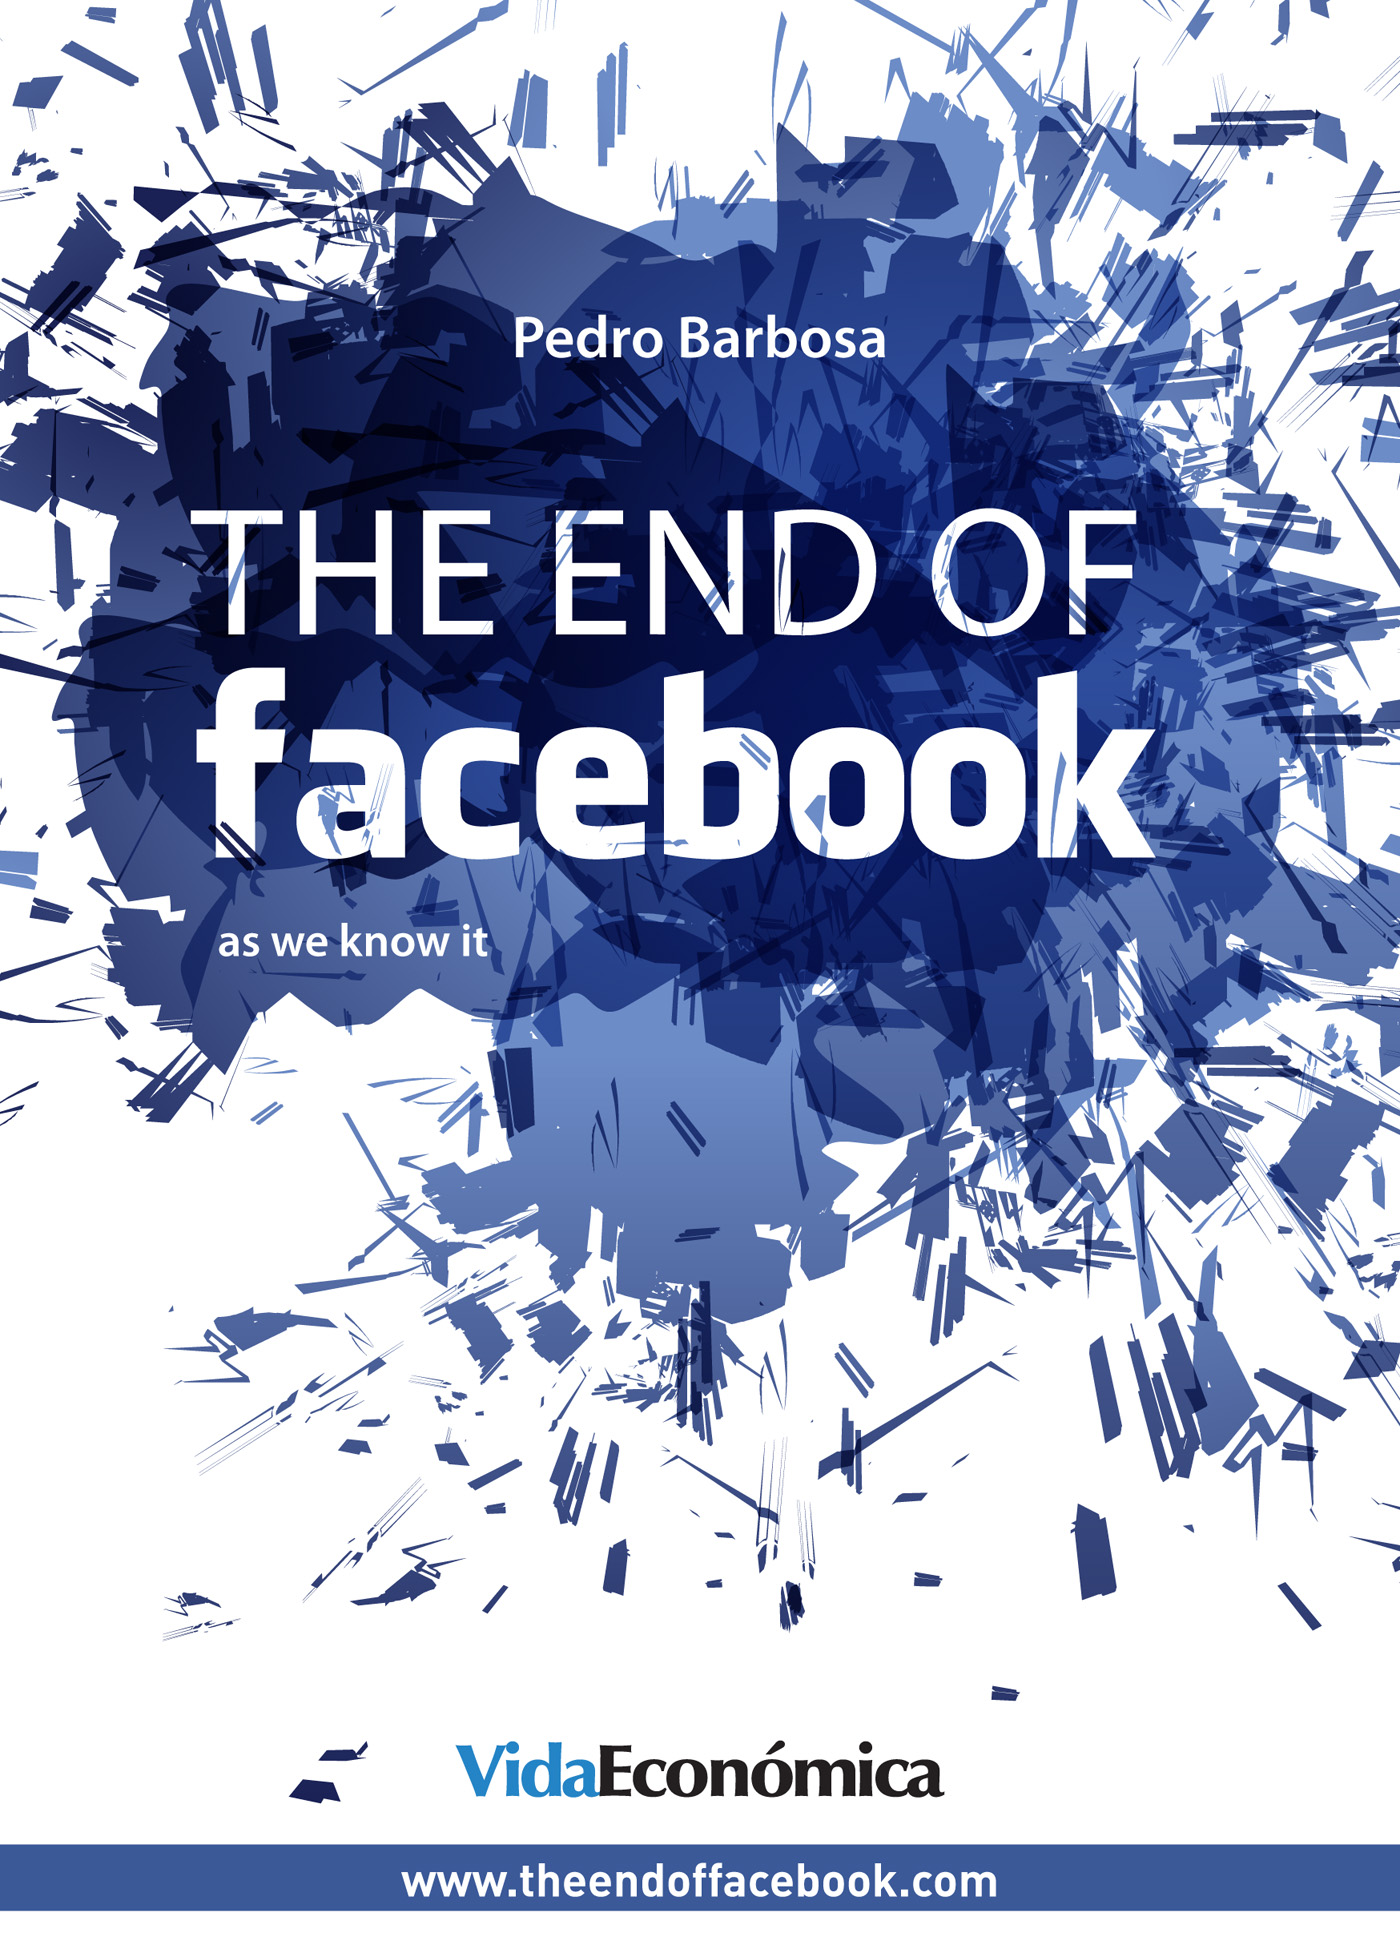 The end of facebook (English version)